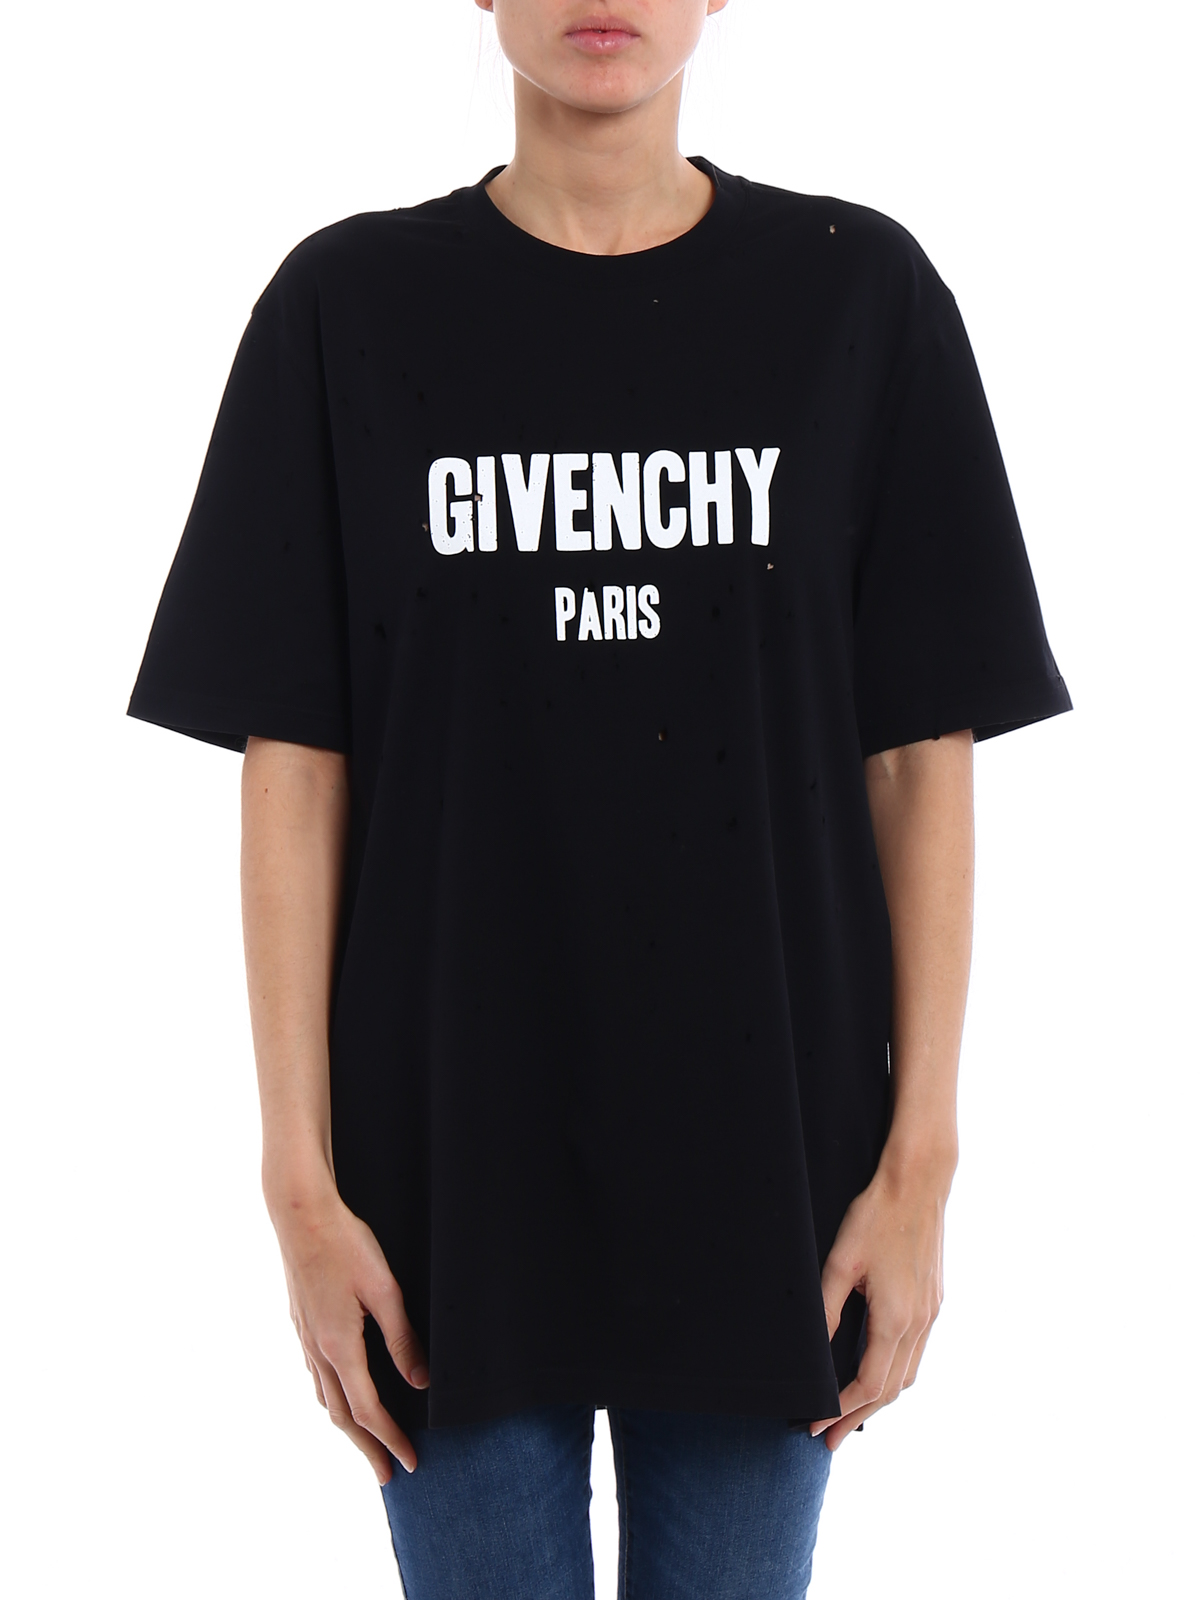 T shirts Givenchy   T Shirt   Over   BW20D20   iKRIX Shop online